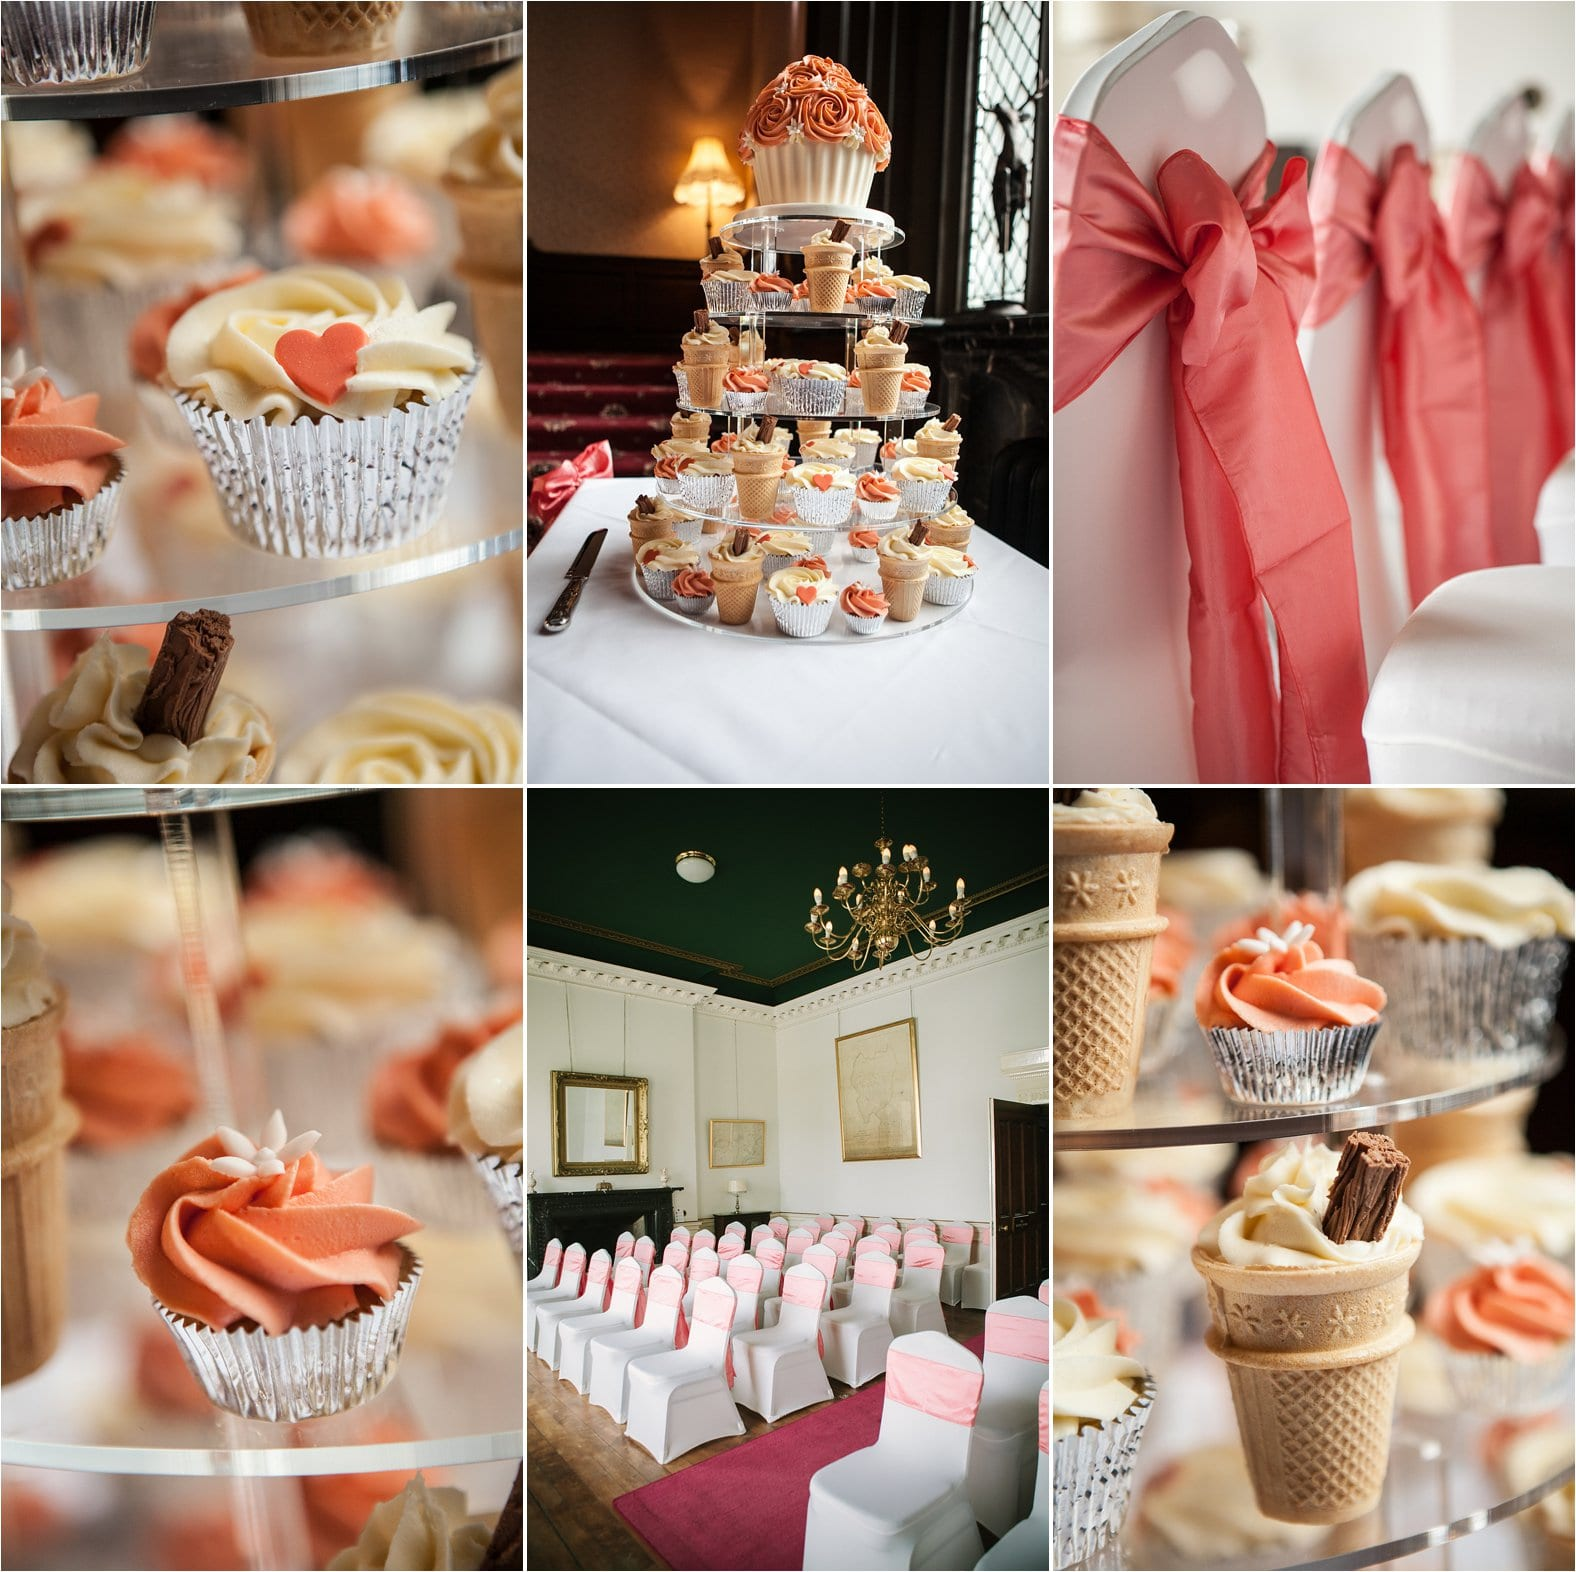 Devon weddings by Younger photography